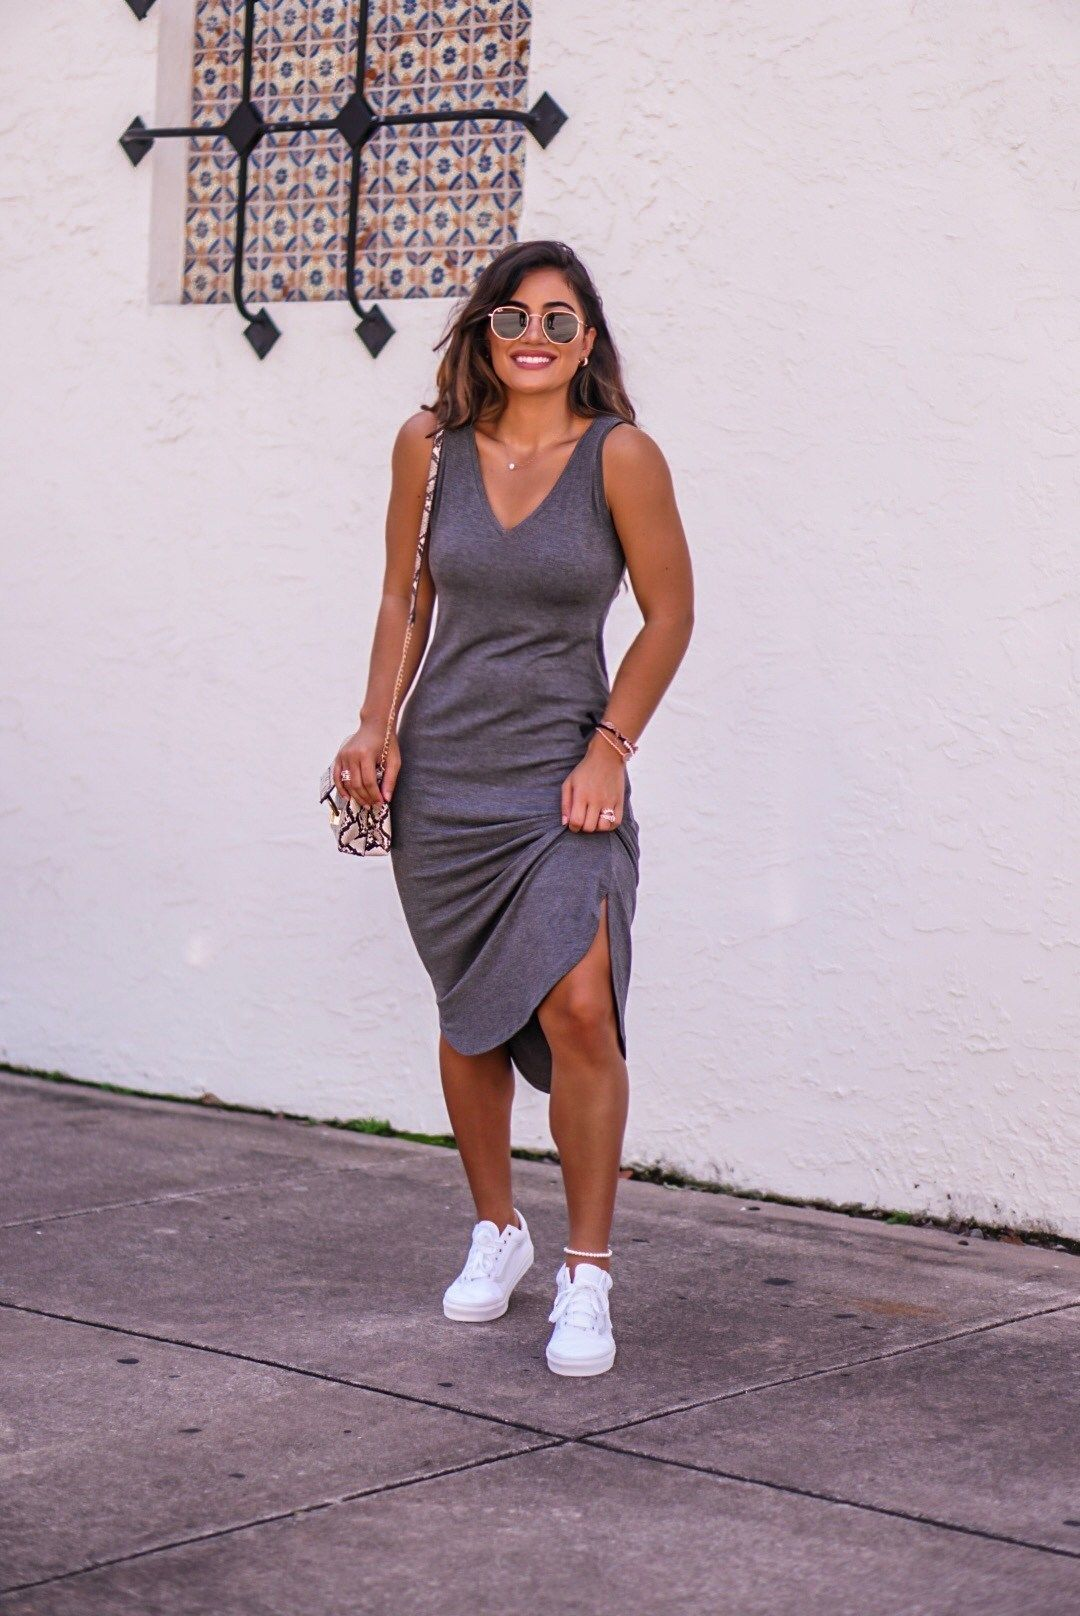 Miami Blogger Krista Perez Shares Her 5 Favorite Comfortable Everyday Dresses Via Sugarlovechic Com Dress And Sneakers Outfit Everyday Dresses Fashion [ 1616 x 1080 Pixel ]